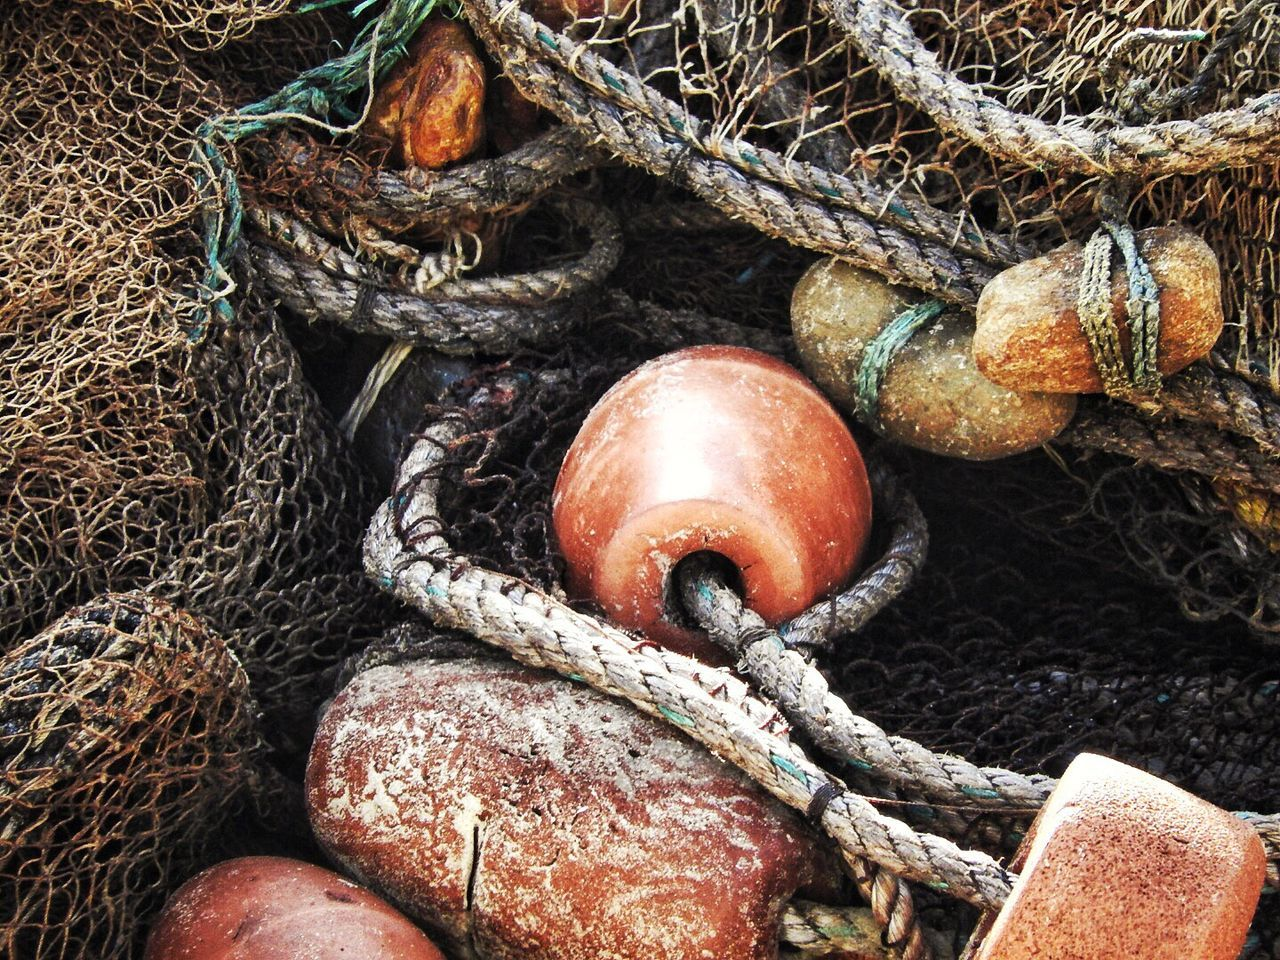 Fishing nets and weights Goa Fishing Net Weights Rope Sea Fishing Stones Net Goa India